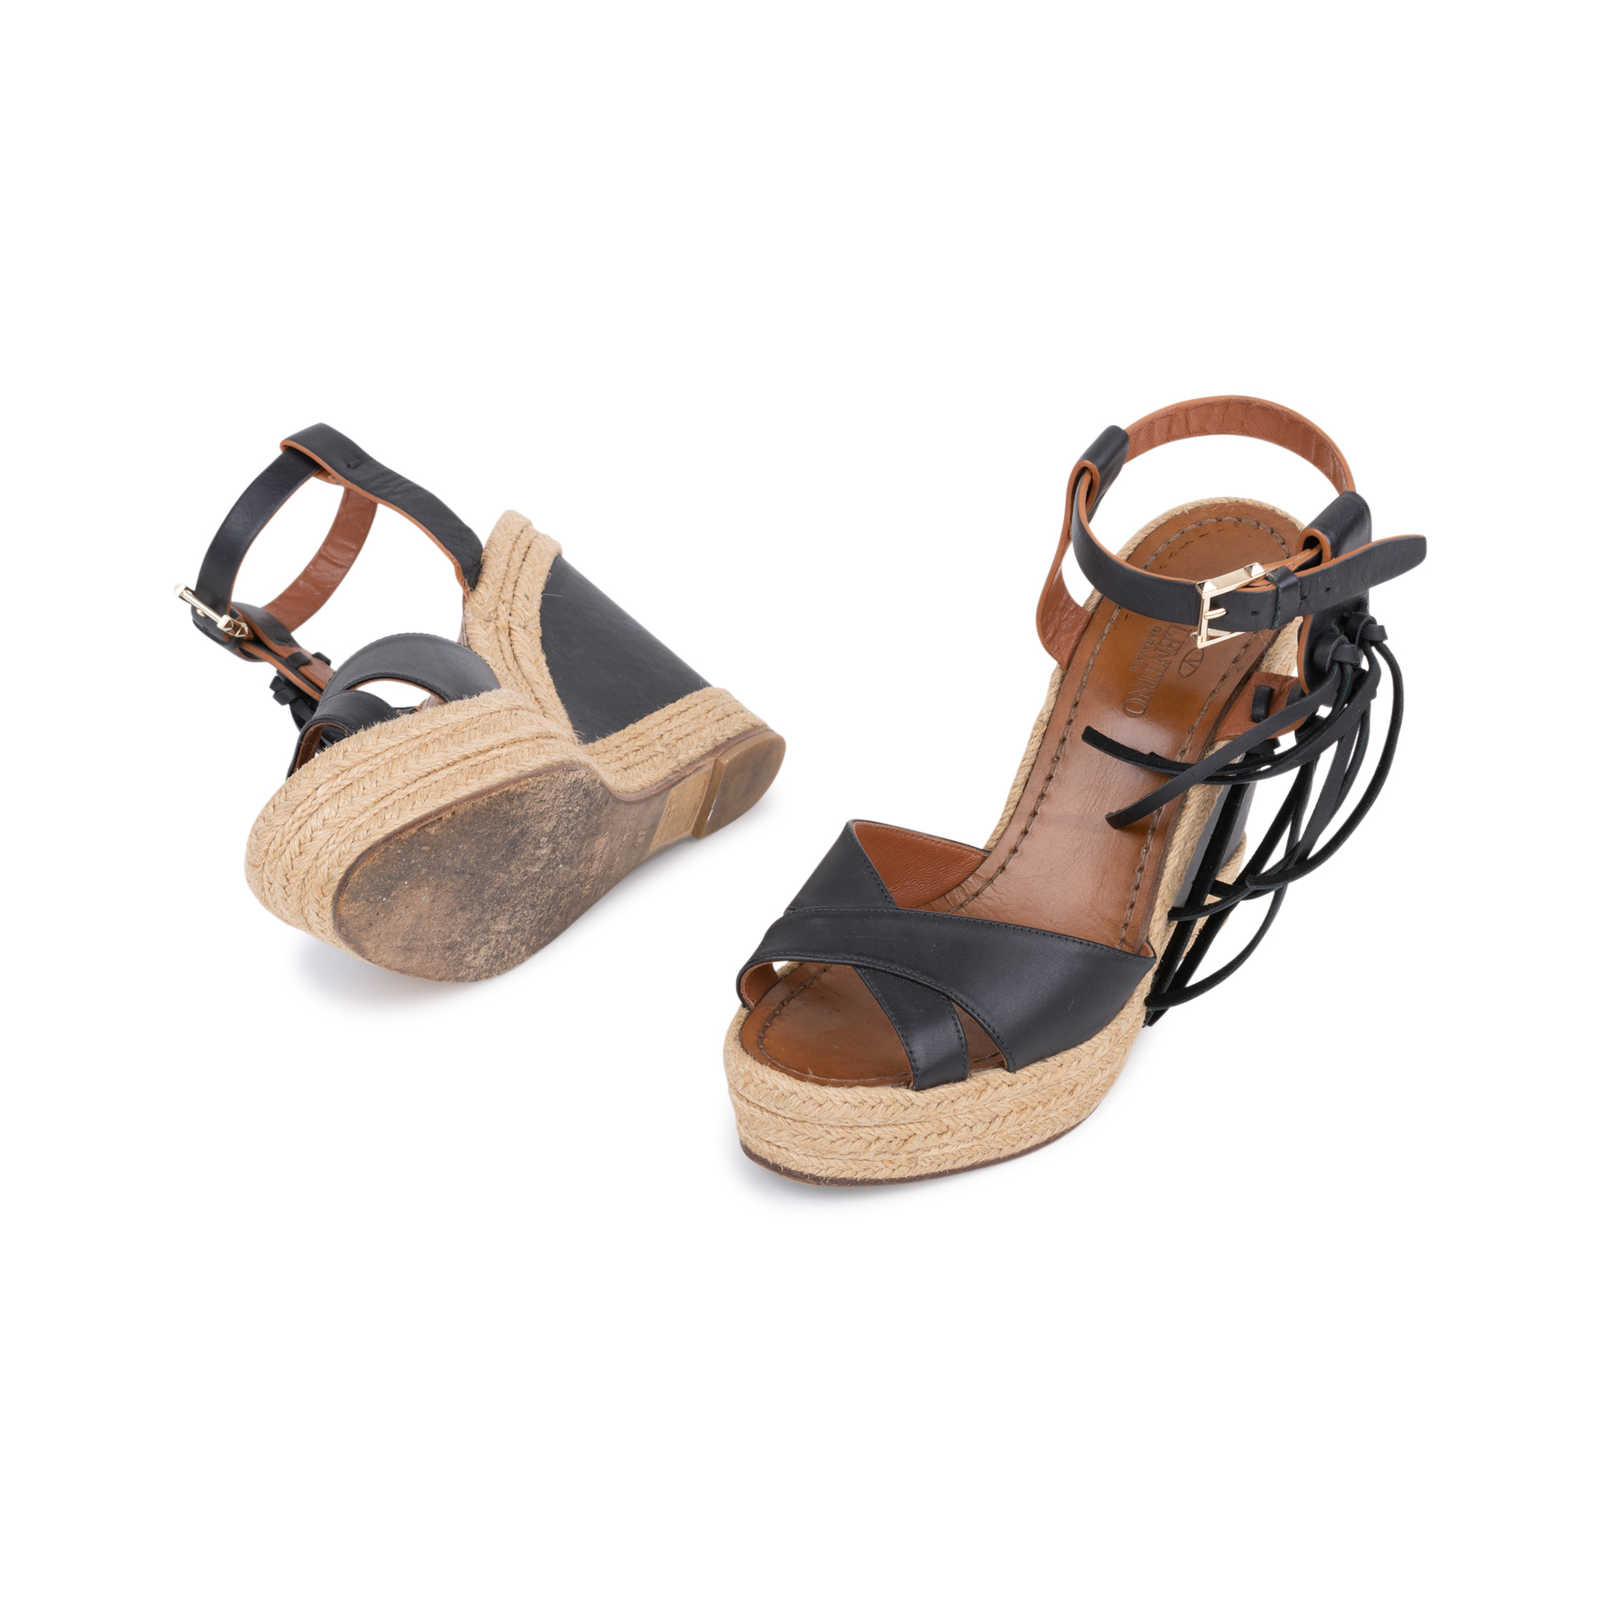 829f351b84b4 ... Authentic Second Hand Valentino Black Espadrille Platform Wedges  (PSS-048-00145) ...